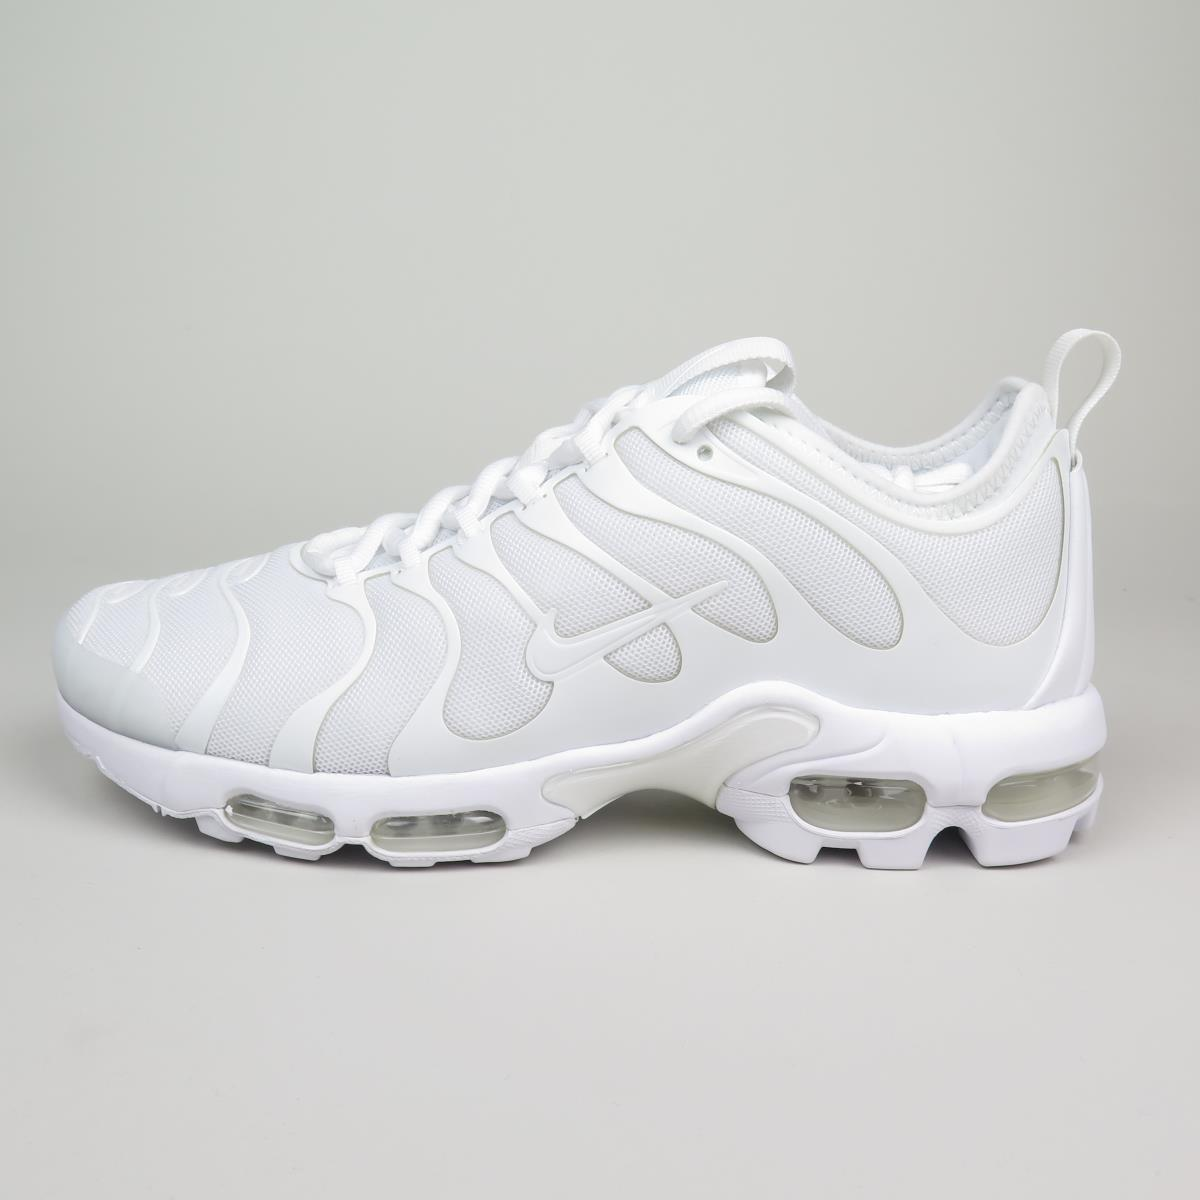 nike air max tn bianche